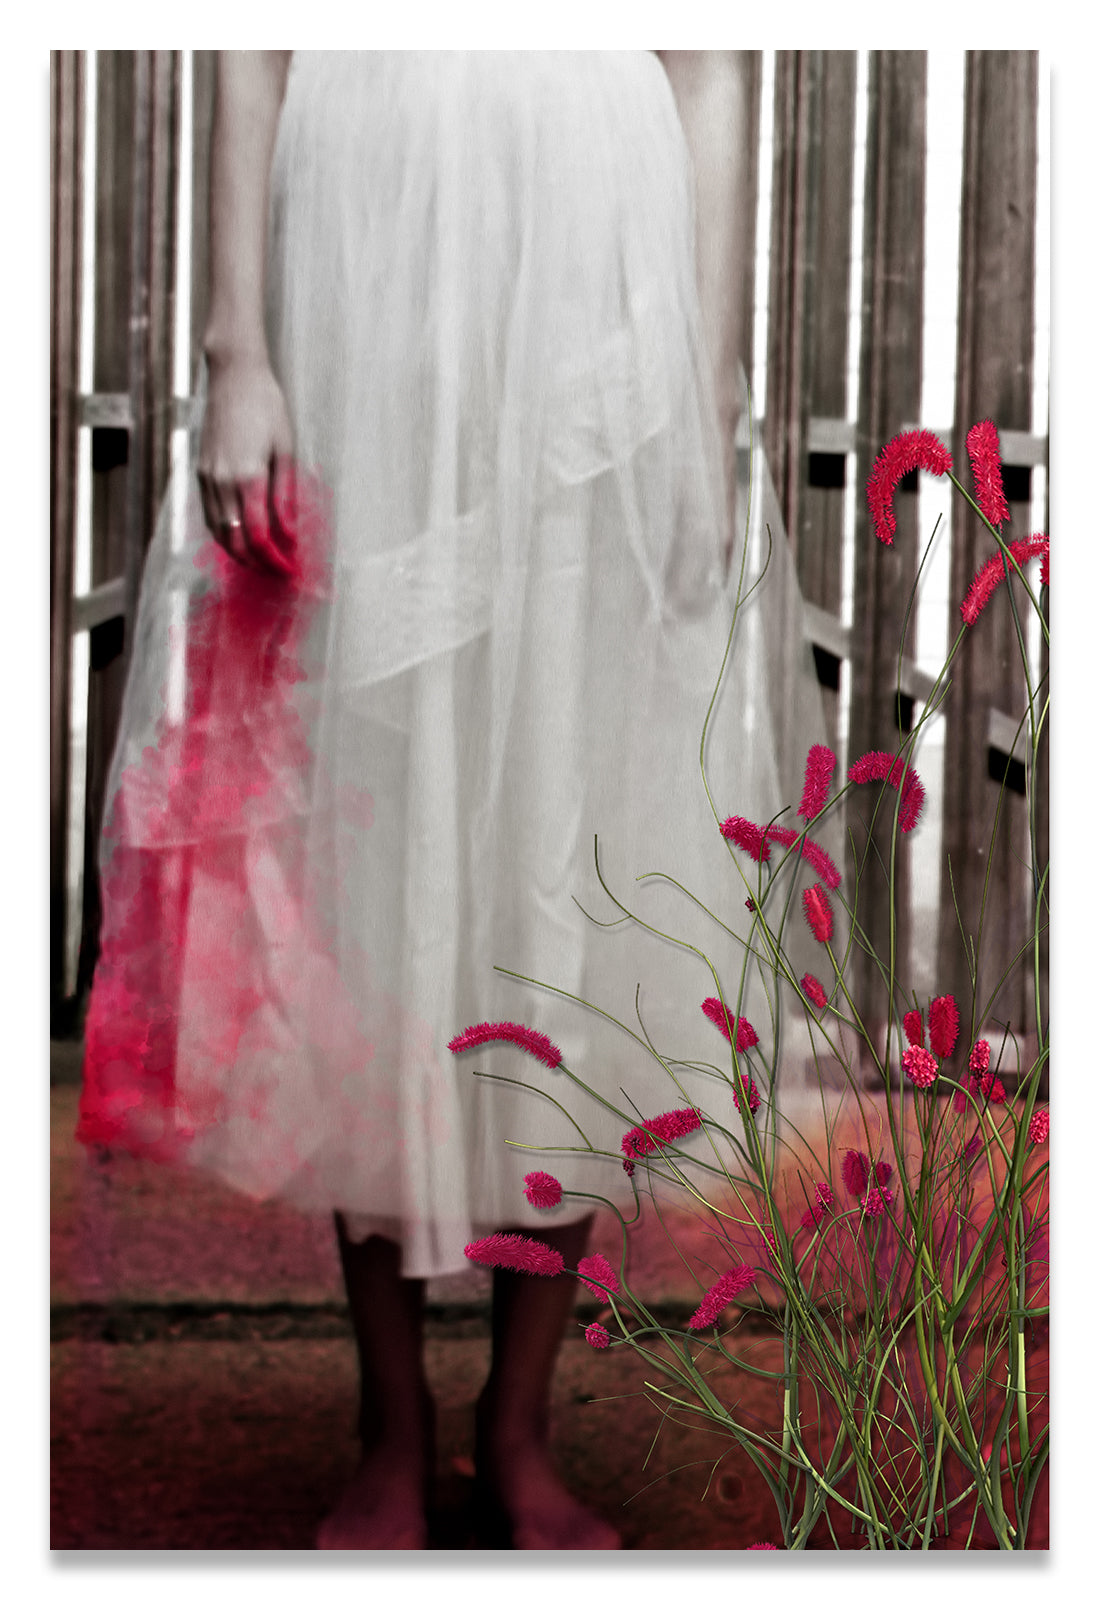 Woman in a Vintage White Lace Dress, cropped at waist, Stnding With a Bloody Hand Dripping Down Her Dress in front of a Gate-Fine Art Print